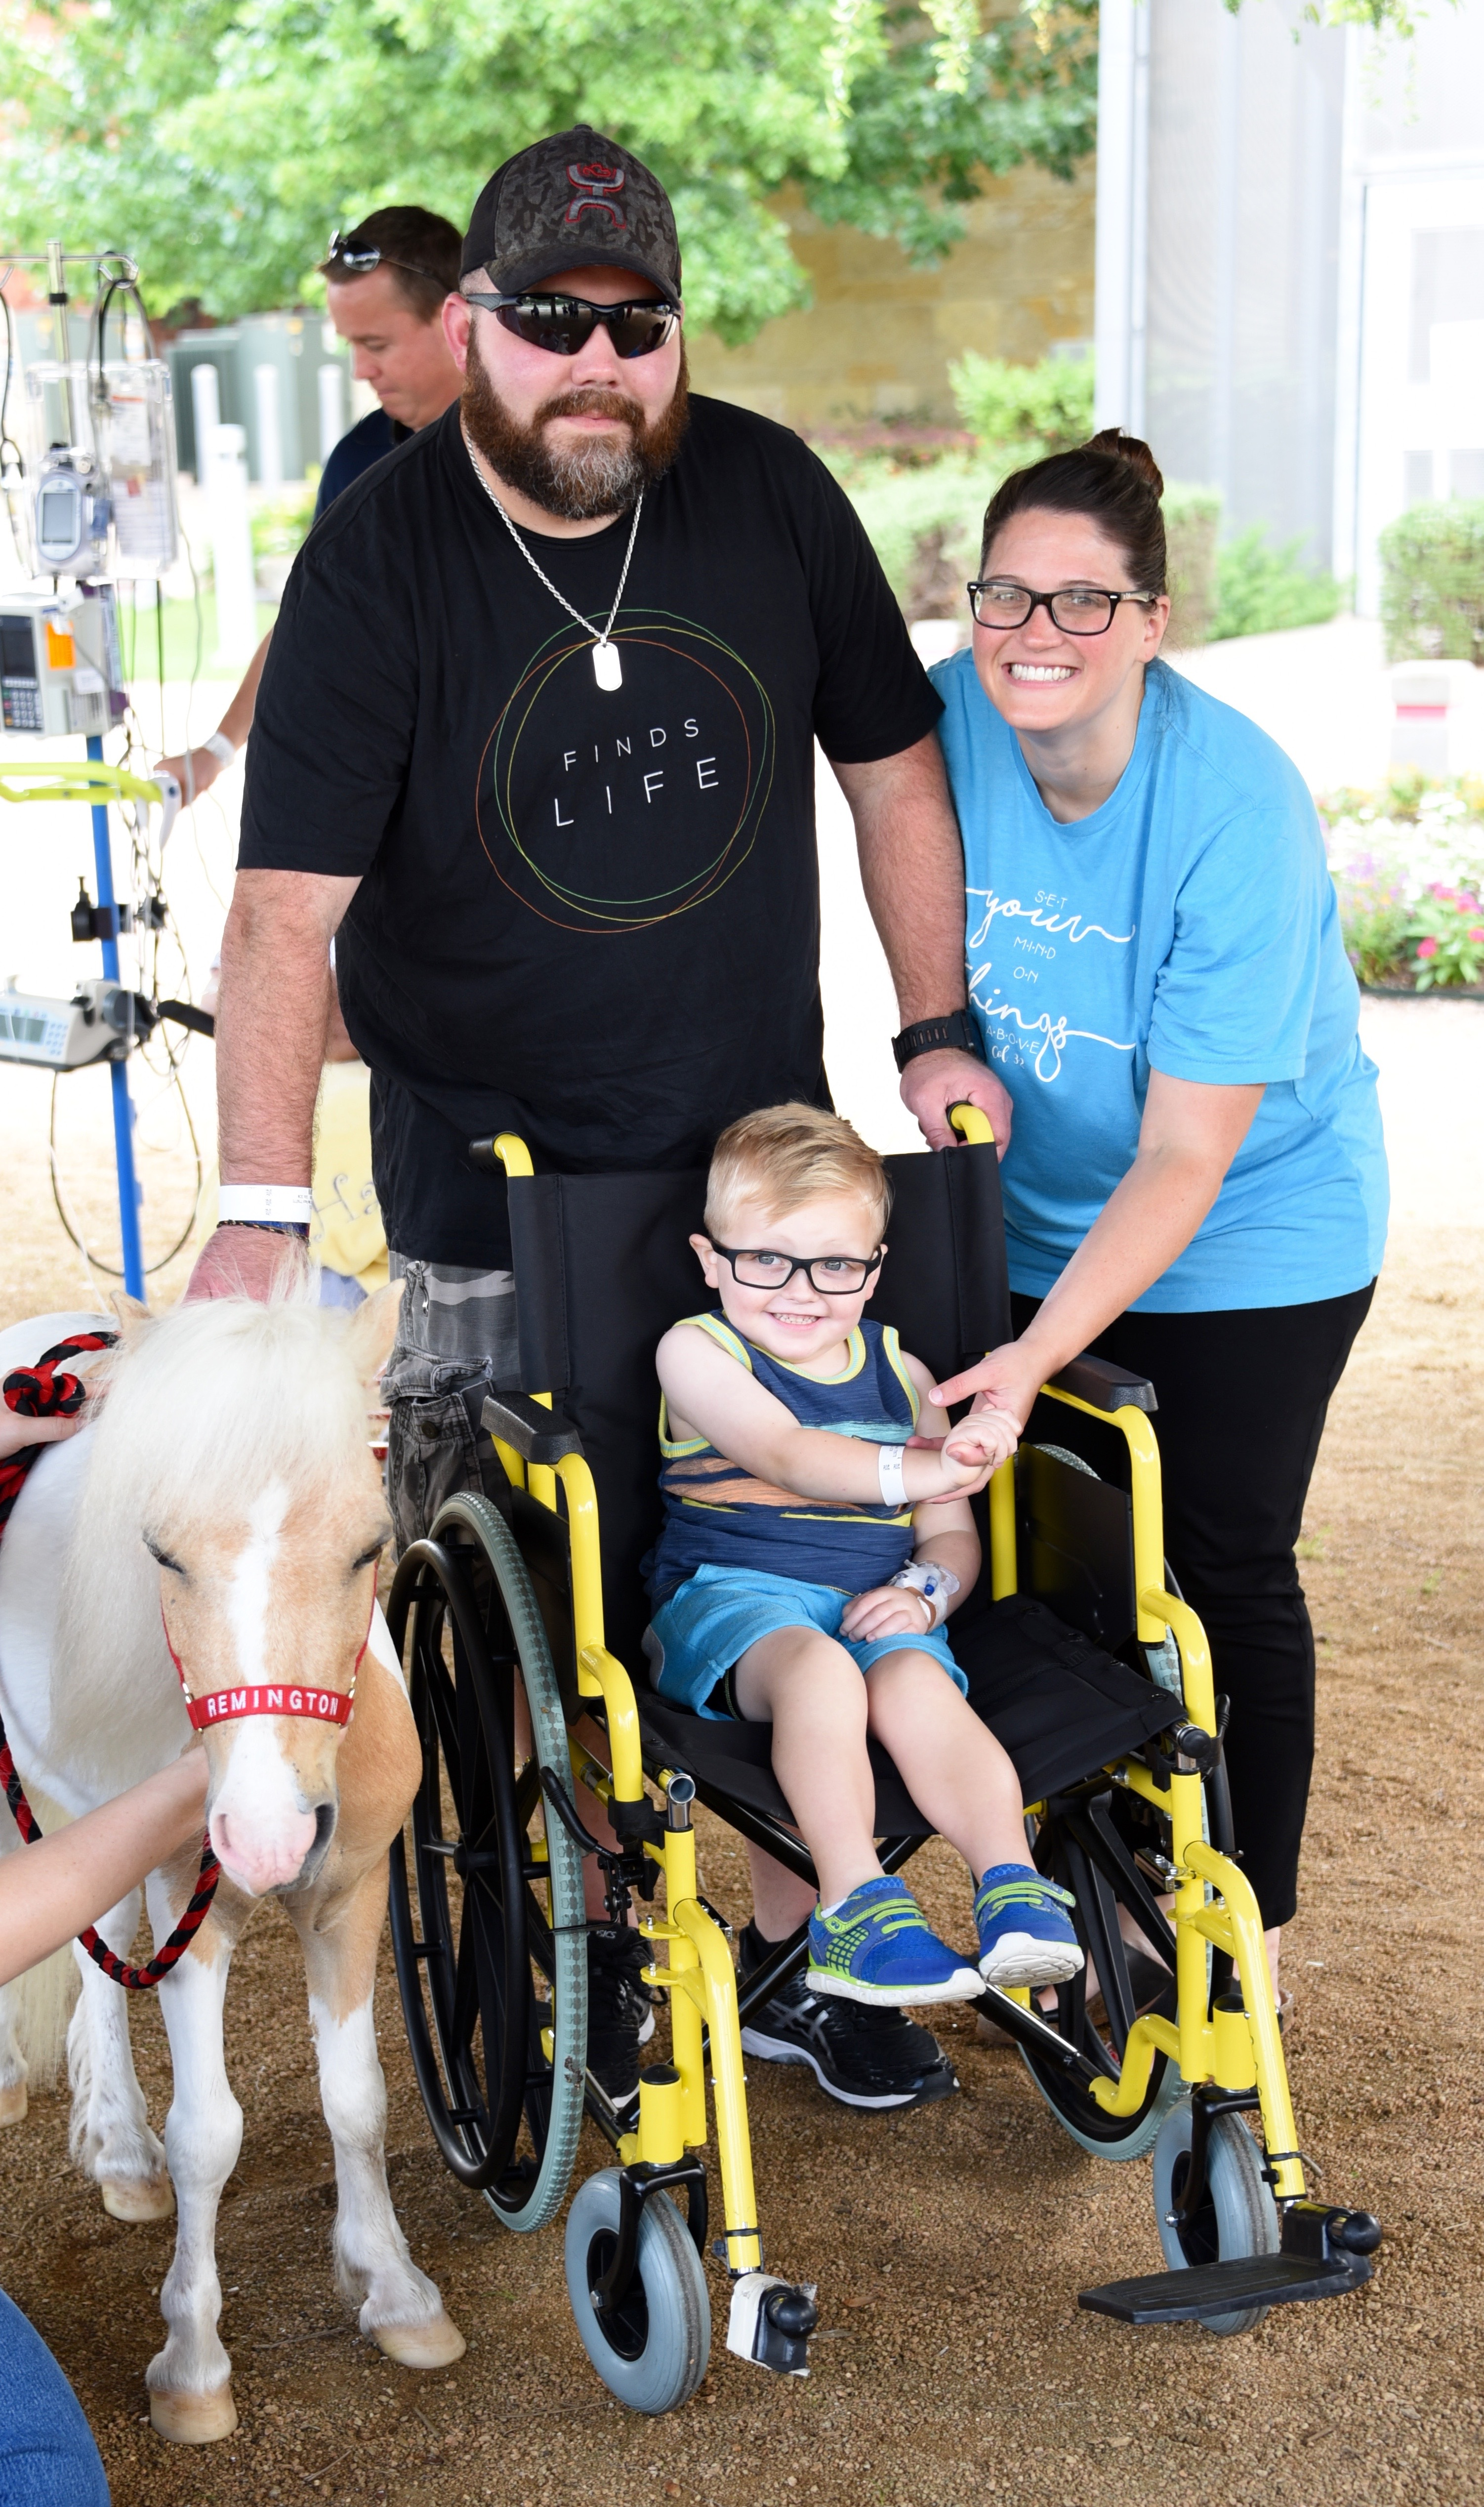 Bring smiles at Dell Children's